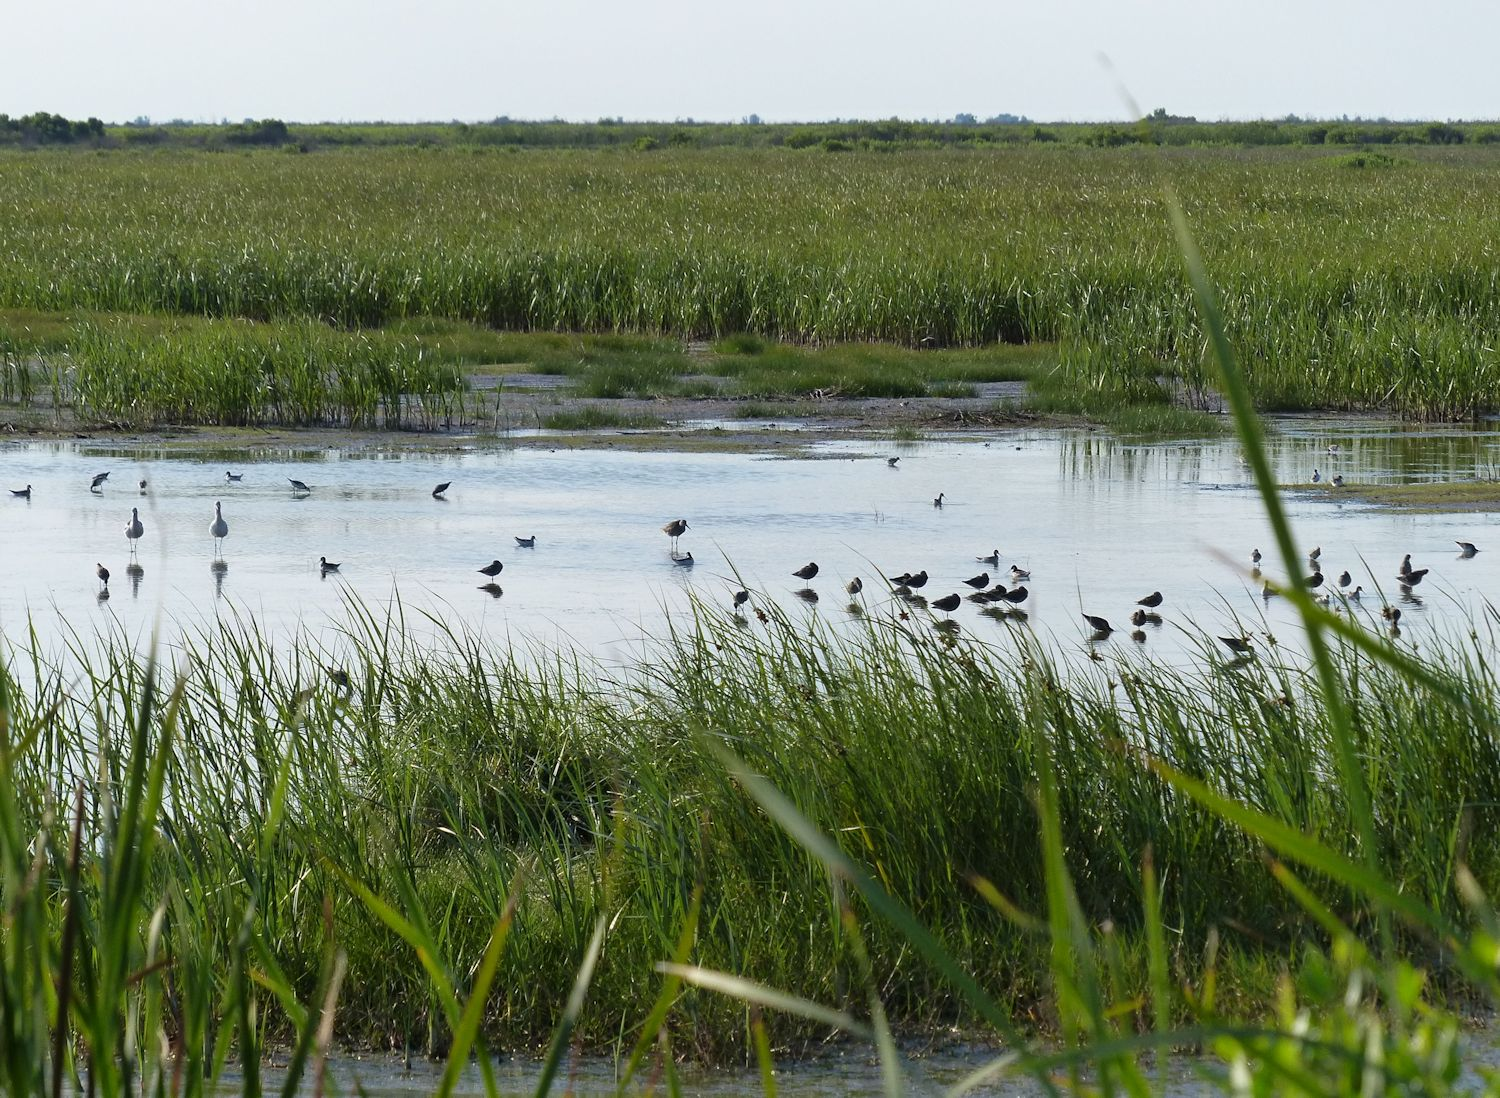 Birds on the shallow ponds